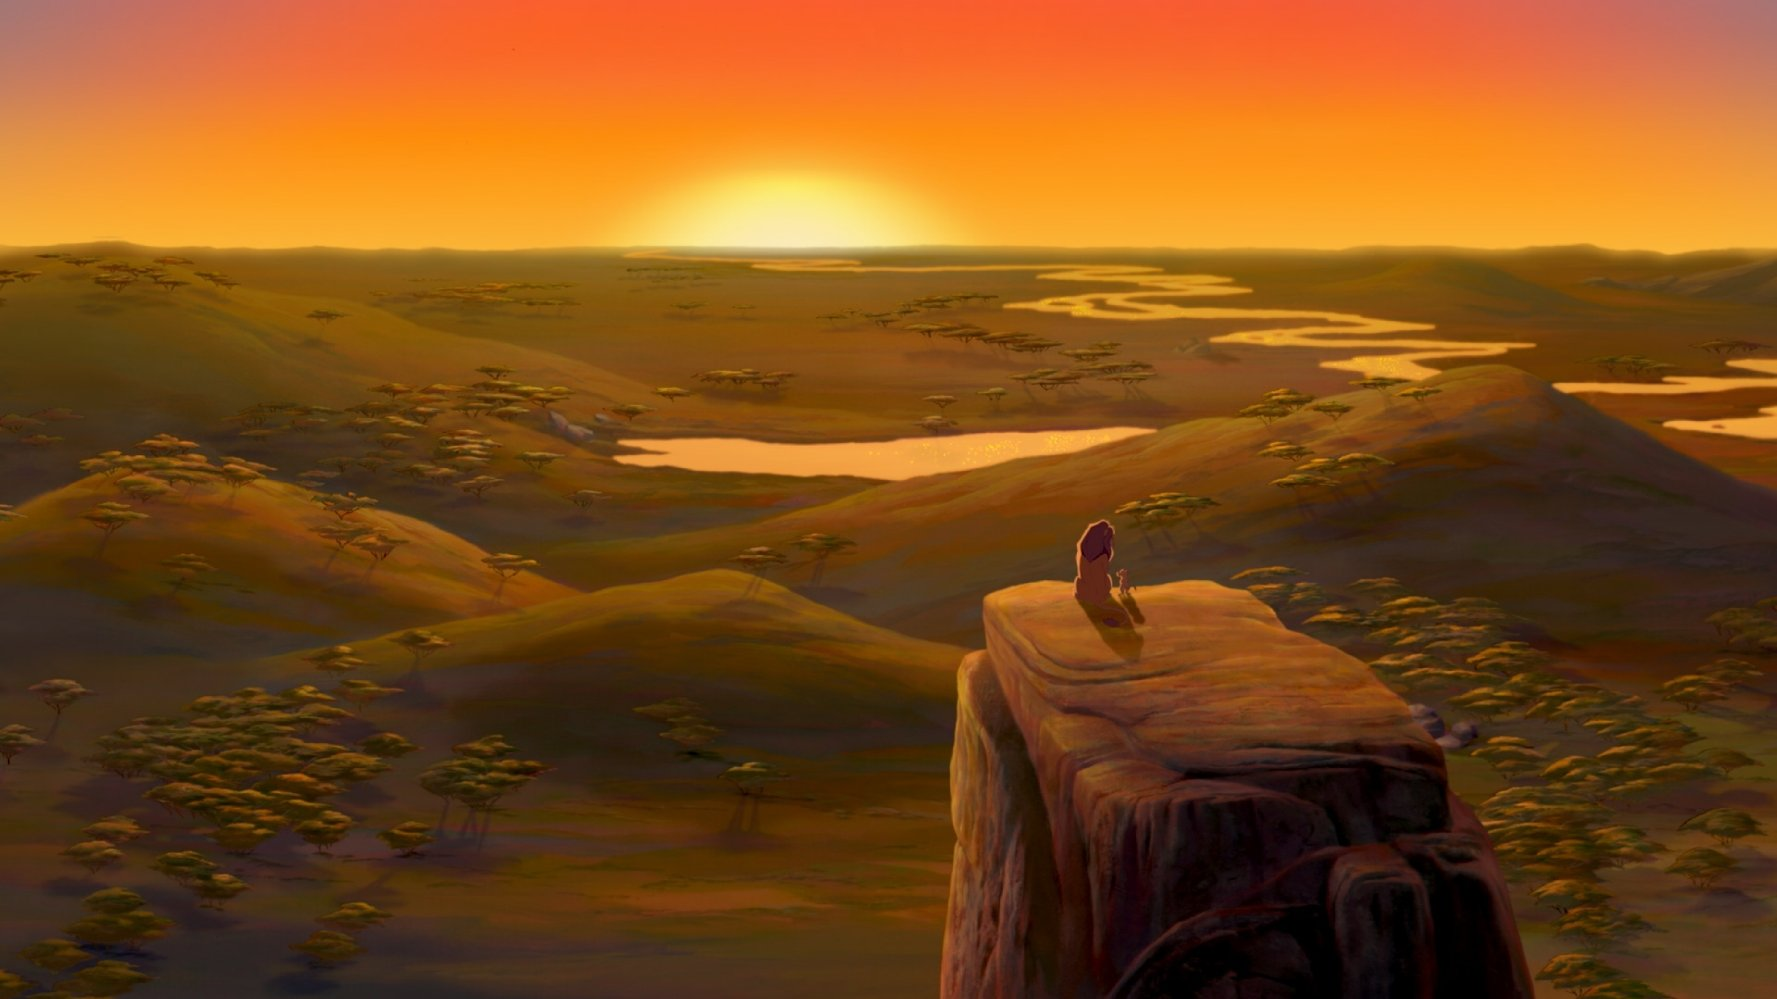 The Lion King is perfect and should NEVER be remade under any circumstances